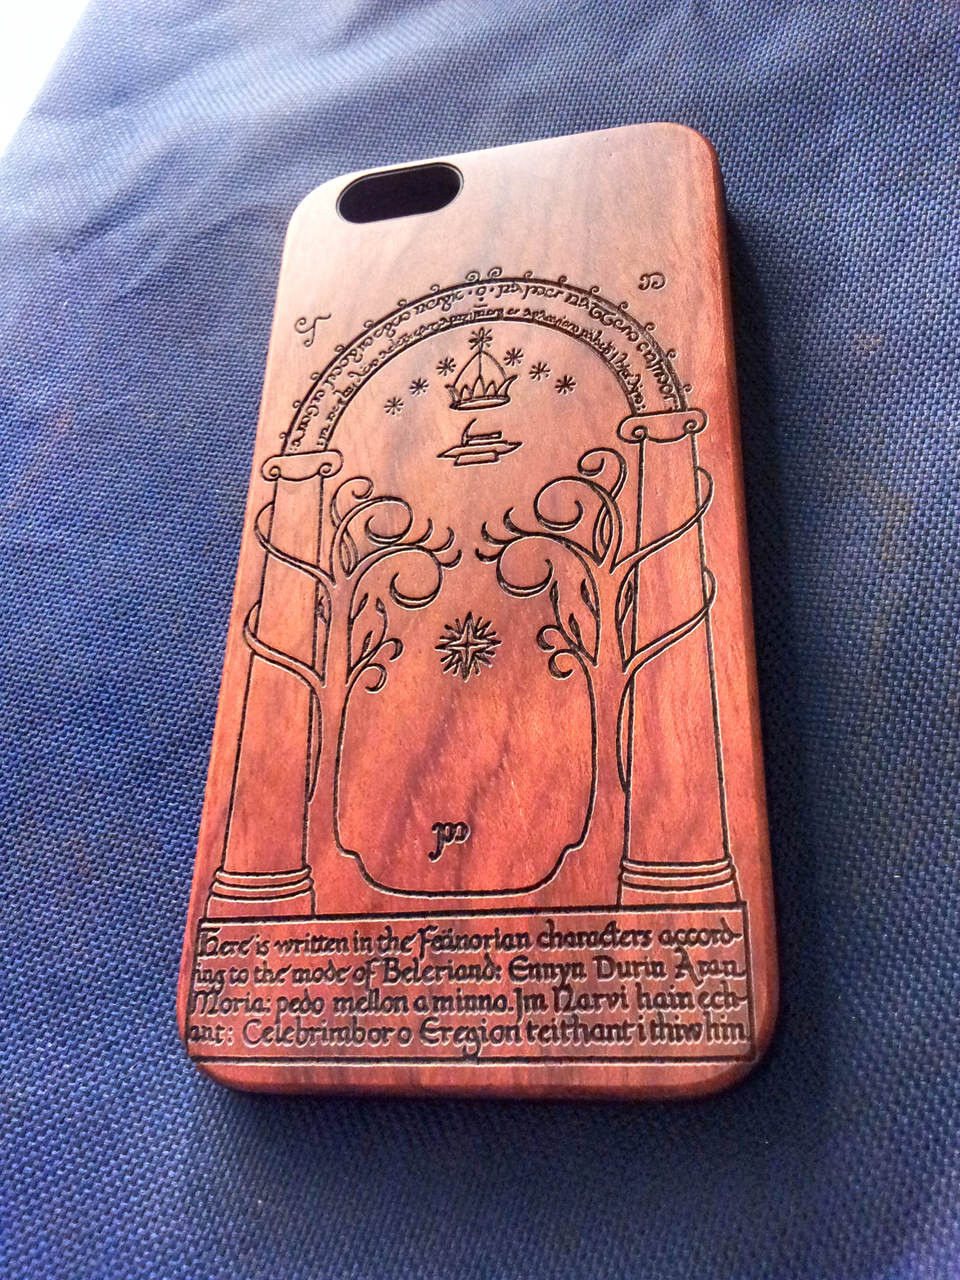 quality design de3e2 9449d Lord of The Rings Wood Phone Case - Hobbit Doors of Durin Inspired Laser  Engraved Personalised Gift - iPhone 5 5s 6 plus Samsung s5 s6 - 62